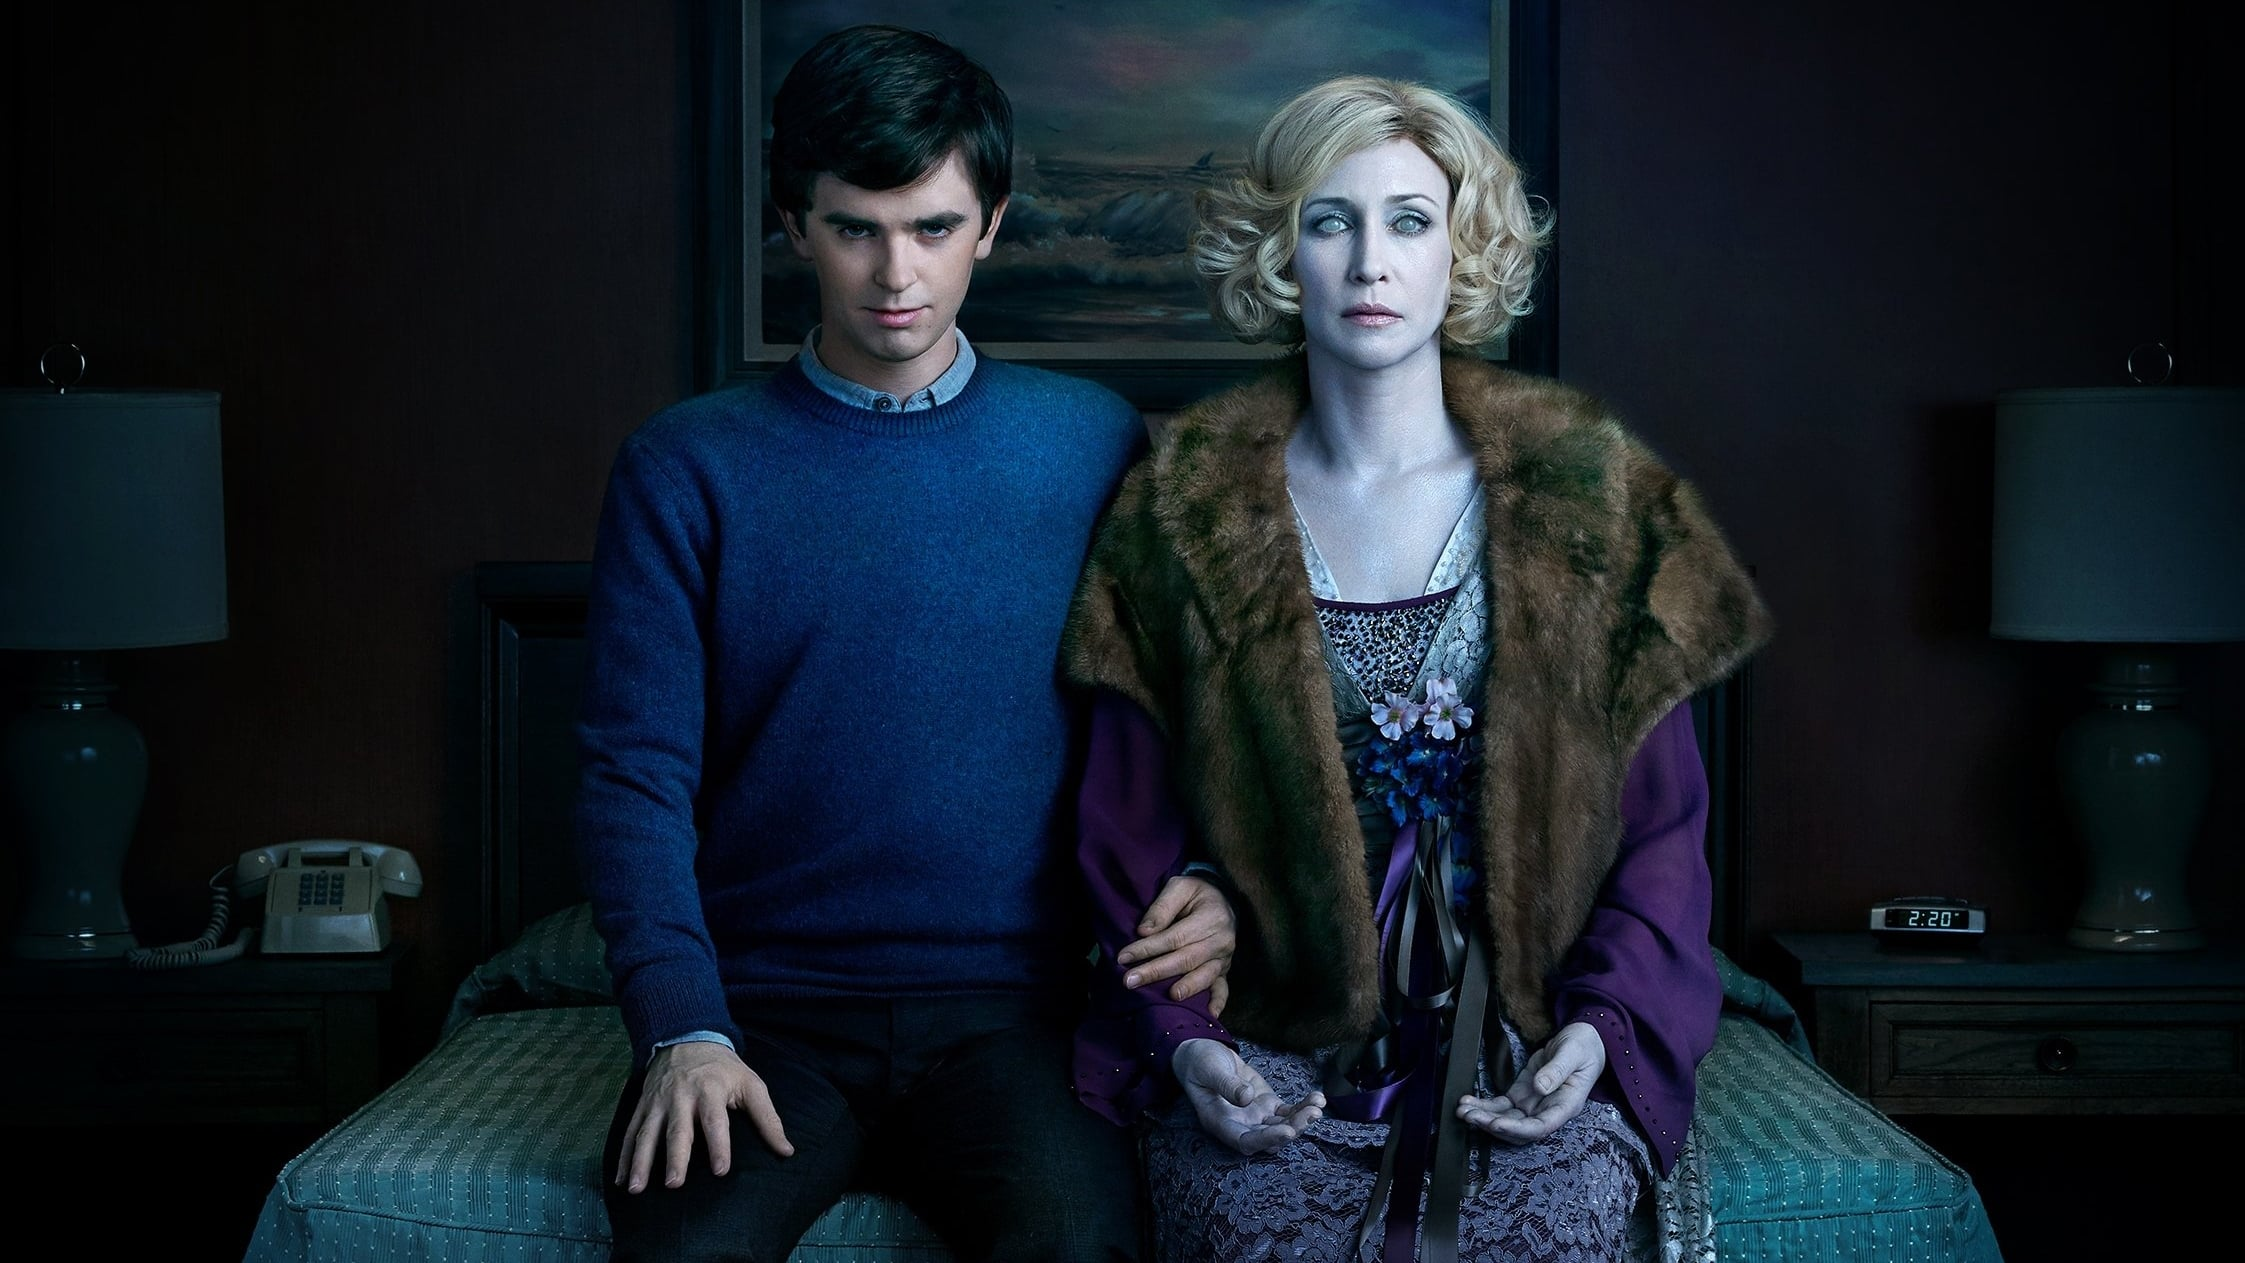 Extended look at: Bates Motel